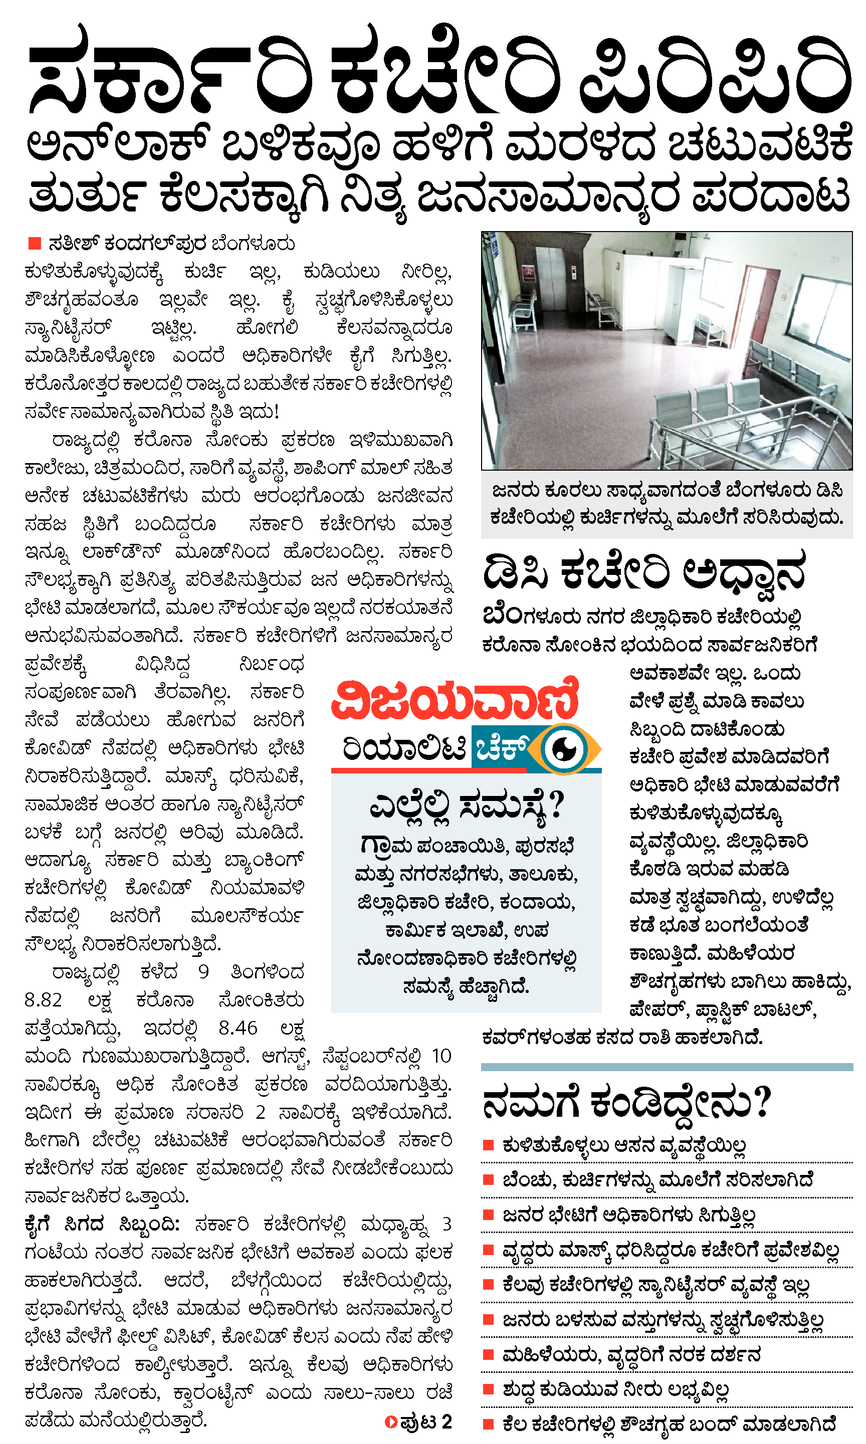 30-11-2020 Monday educational information and others news and today news paper,s